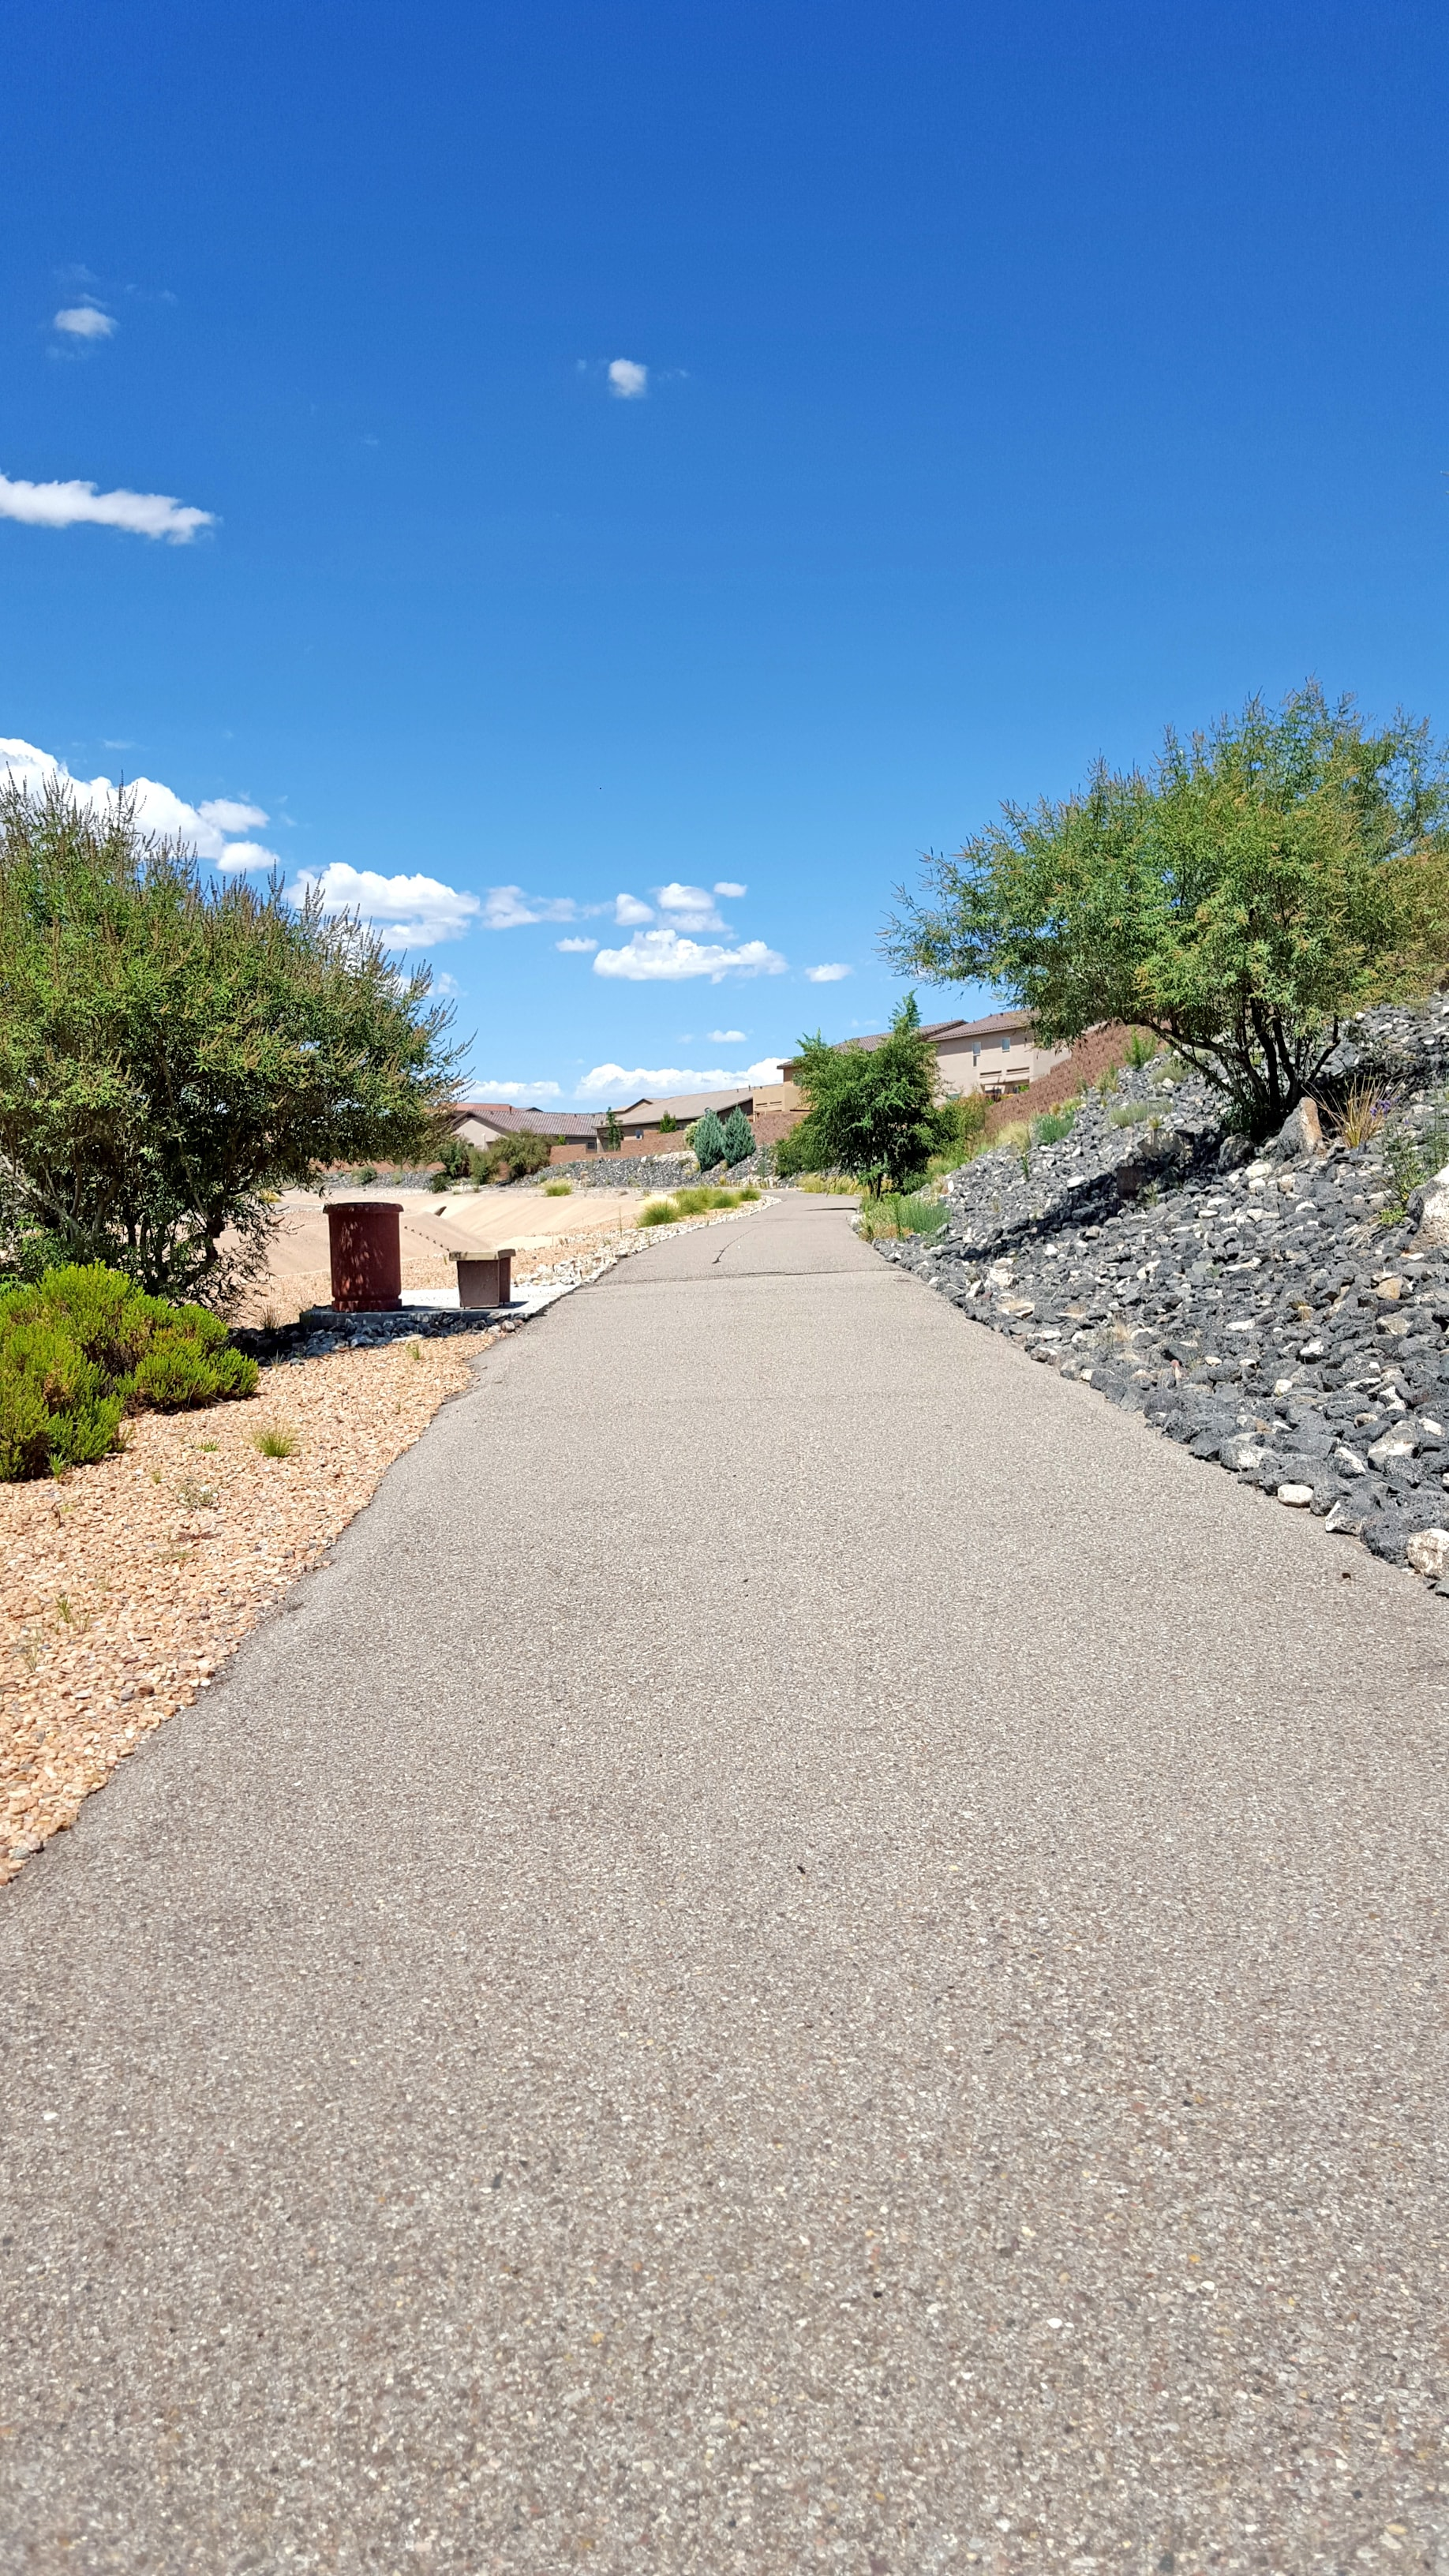 Cabezon Pedestrian Trails